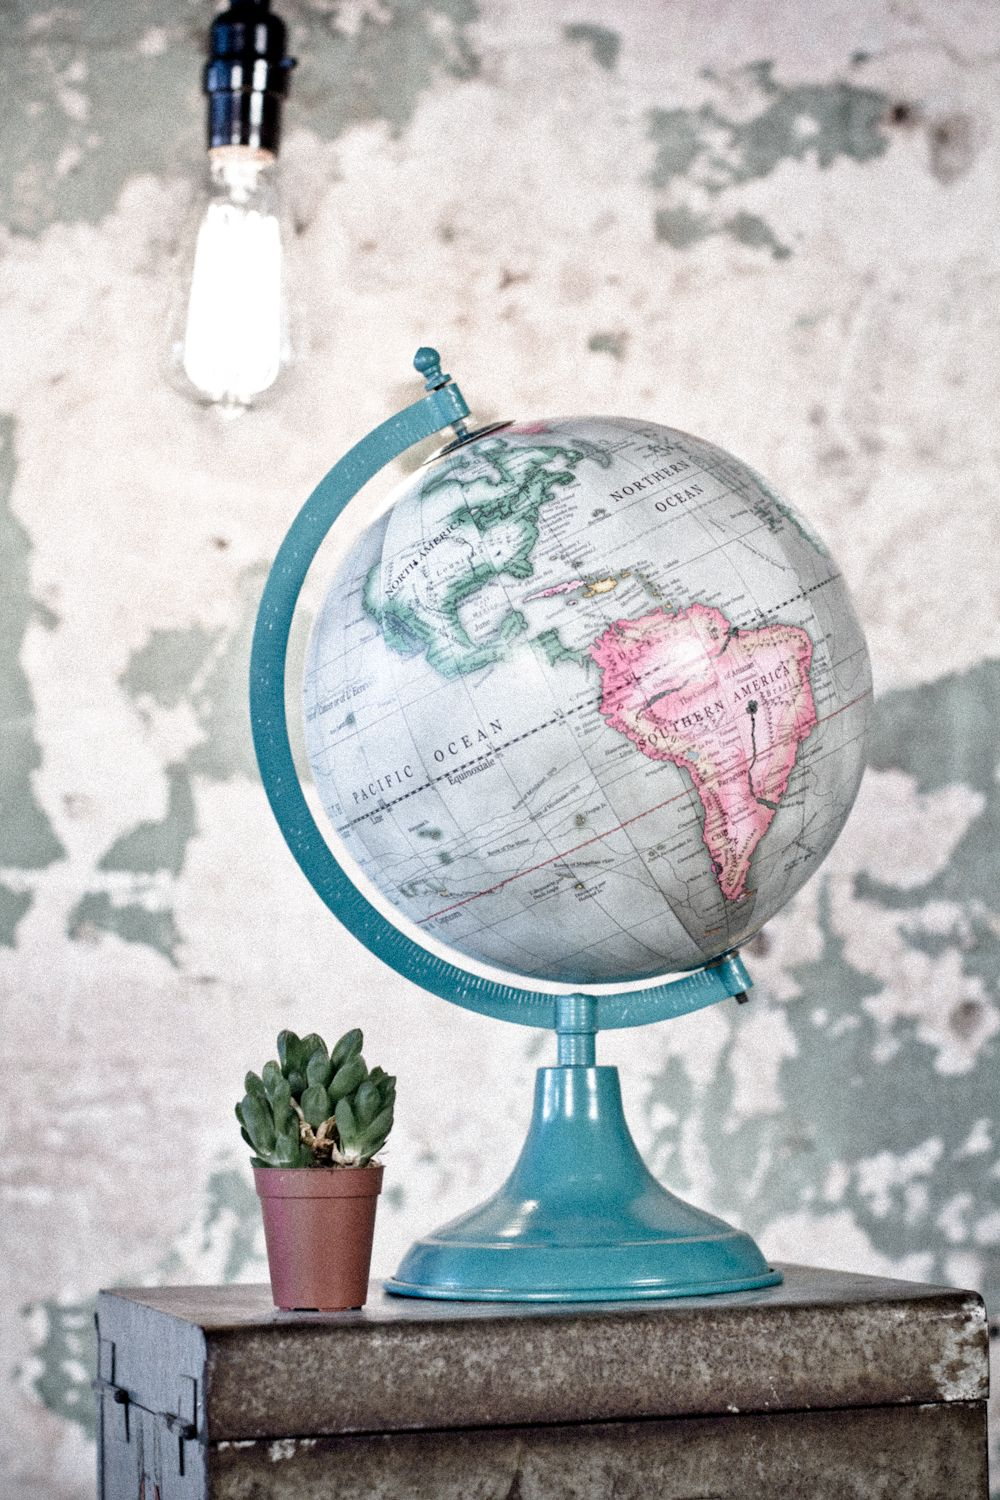 teal globe from earthbound trading co has to be bought instore at teal globe from earthbound trading co has to be bought instore at romacning the stone